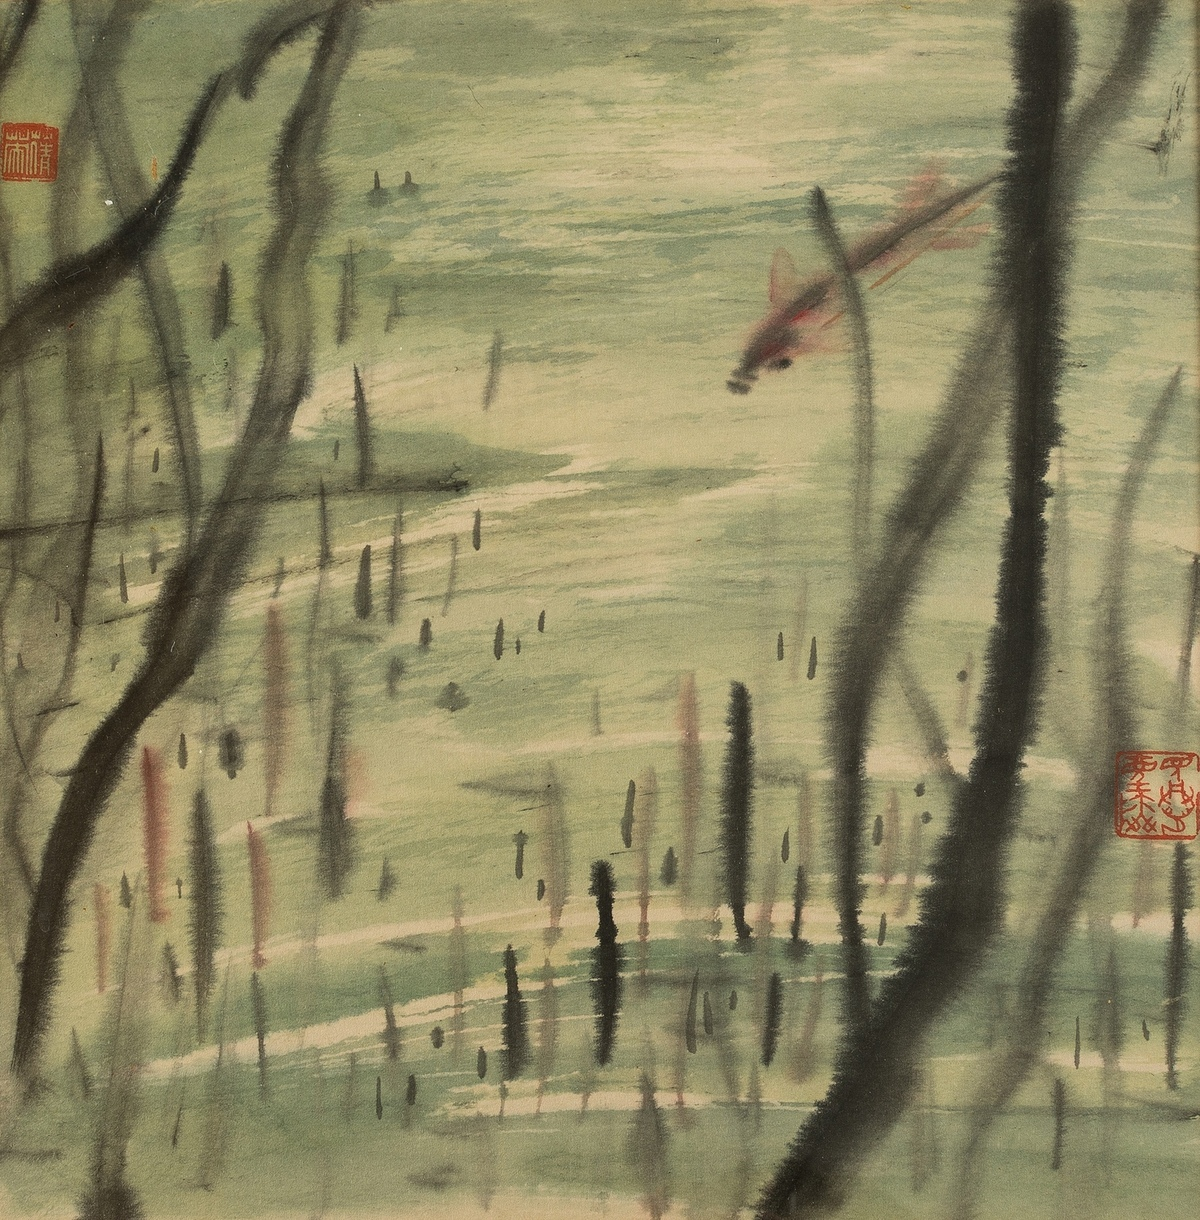 China.- Chang (Chien-Ying) Under the water, 1955.